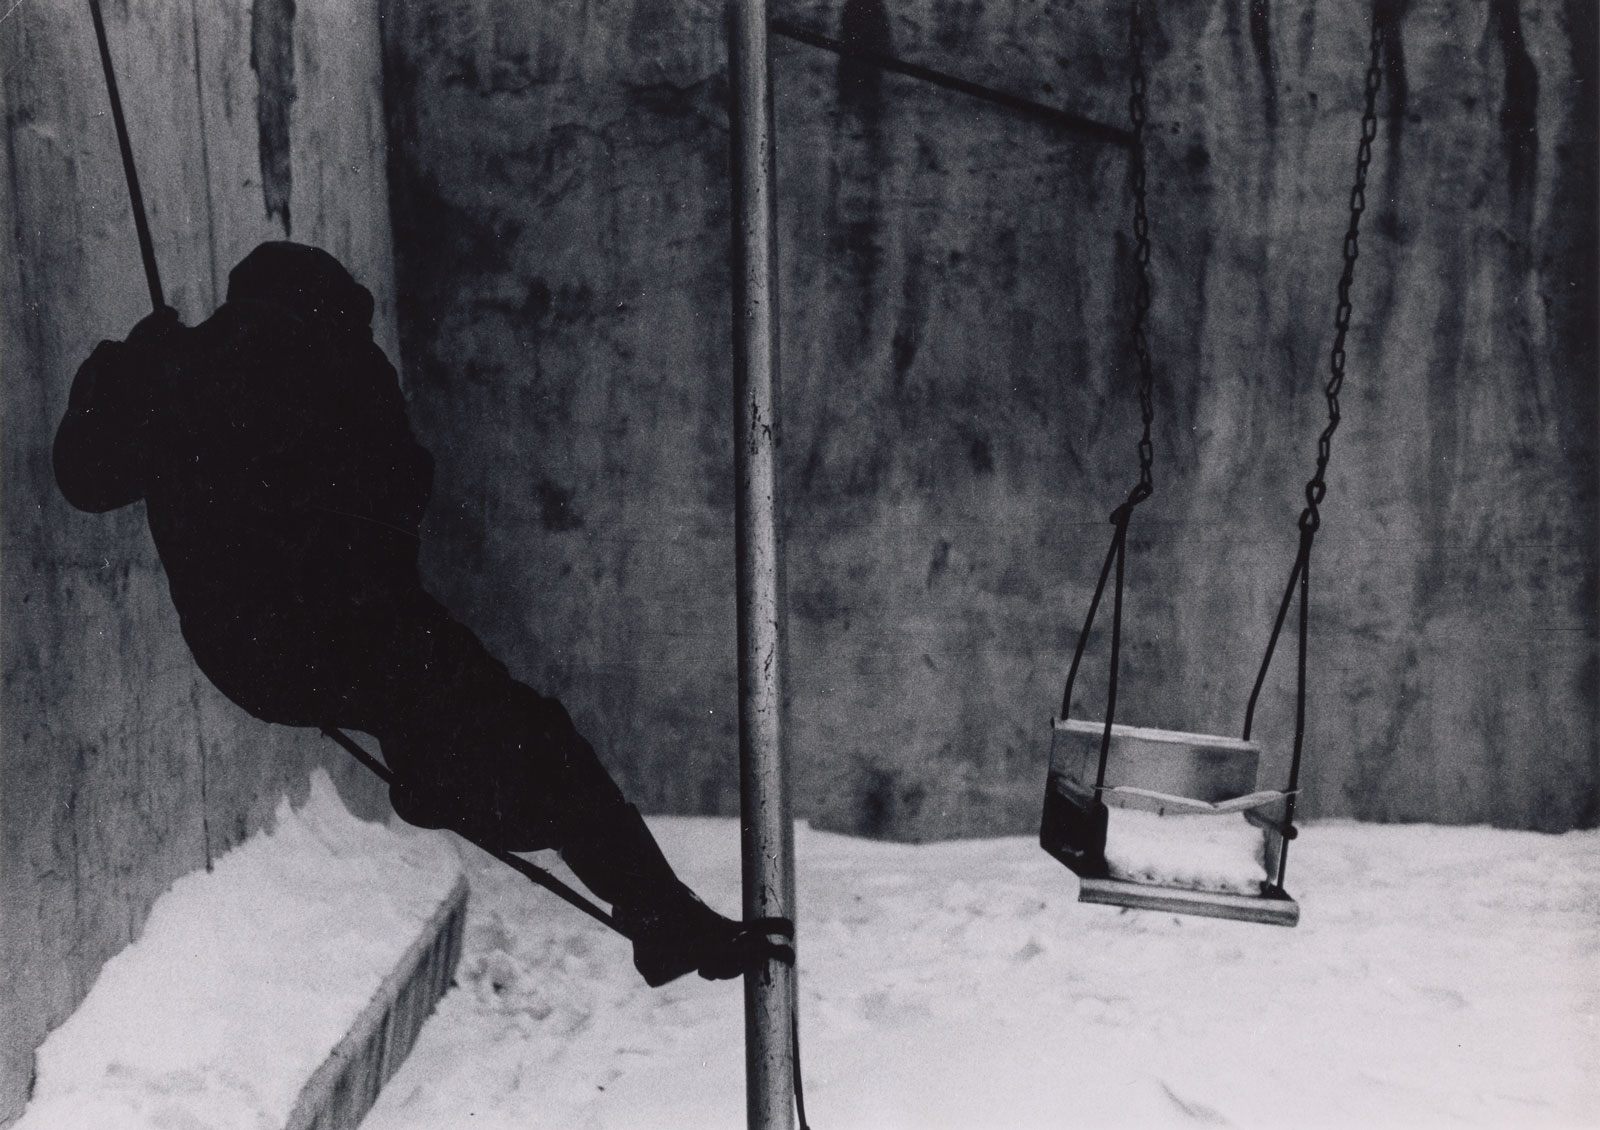 A boy in dark shadows on a swing in the snow